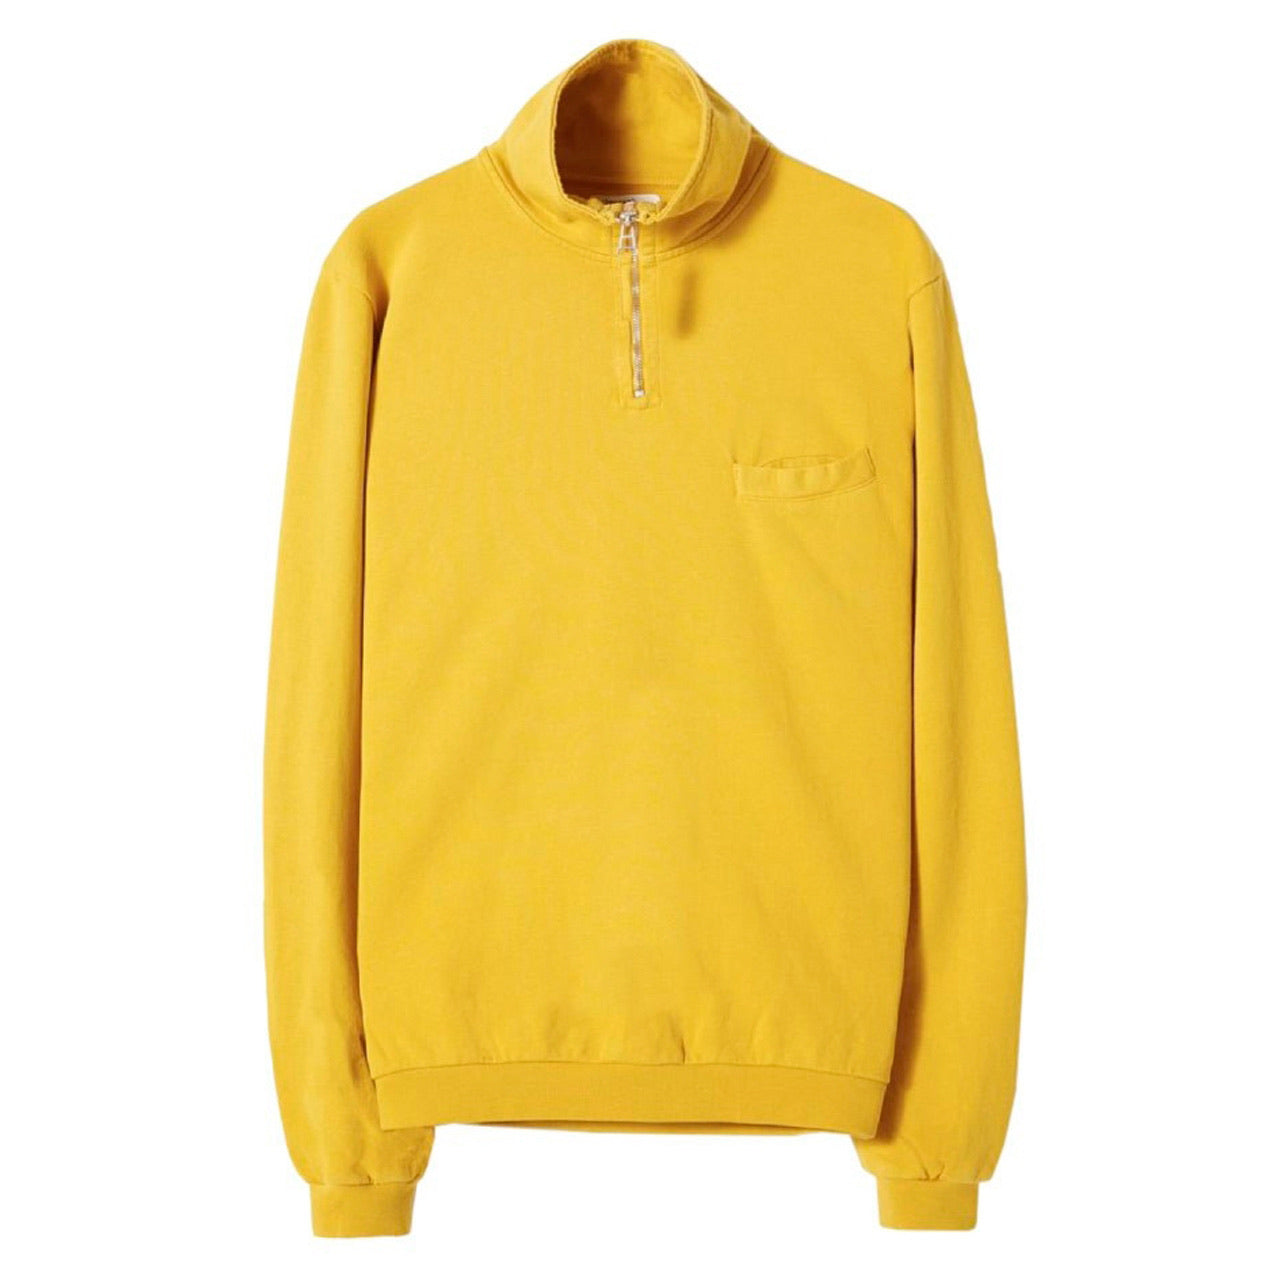 Universal Works DIAG LOOPBACK ZIP NECK SWEATSHIRT Sun